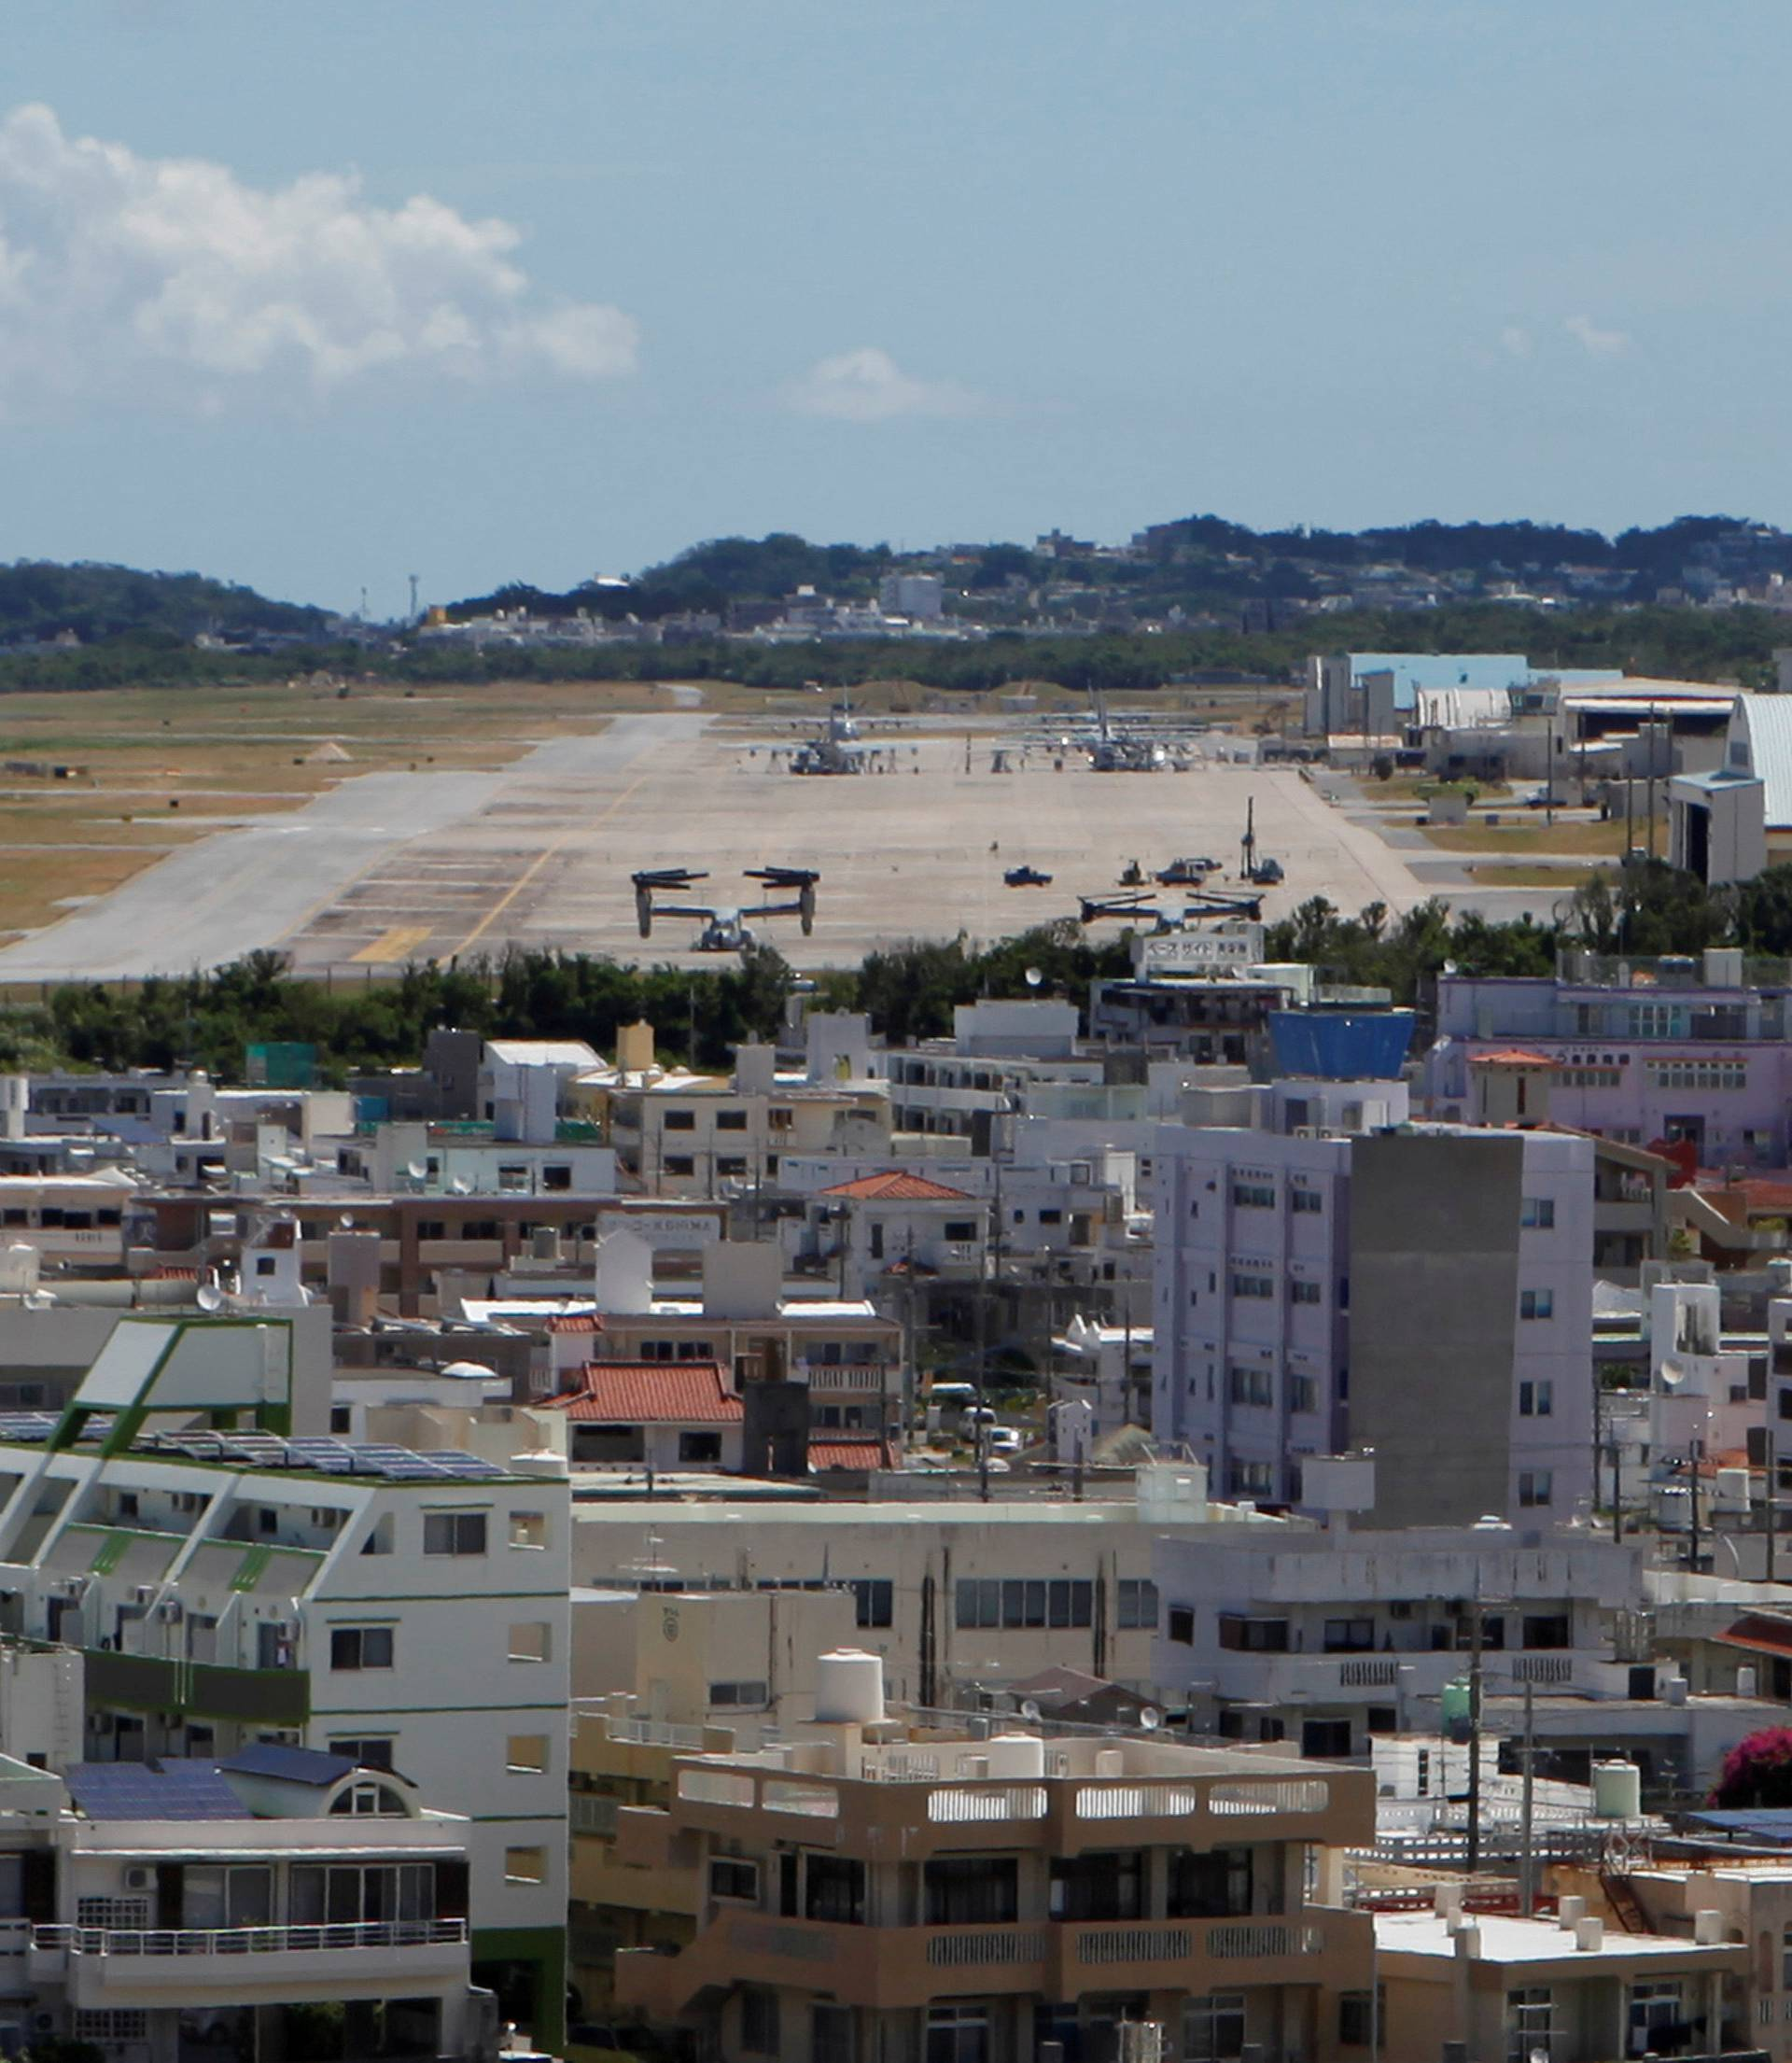 Osprey military aircraft are seen at the U.S. Futenma airbase in Ginowan